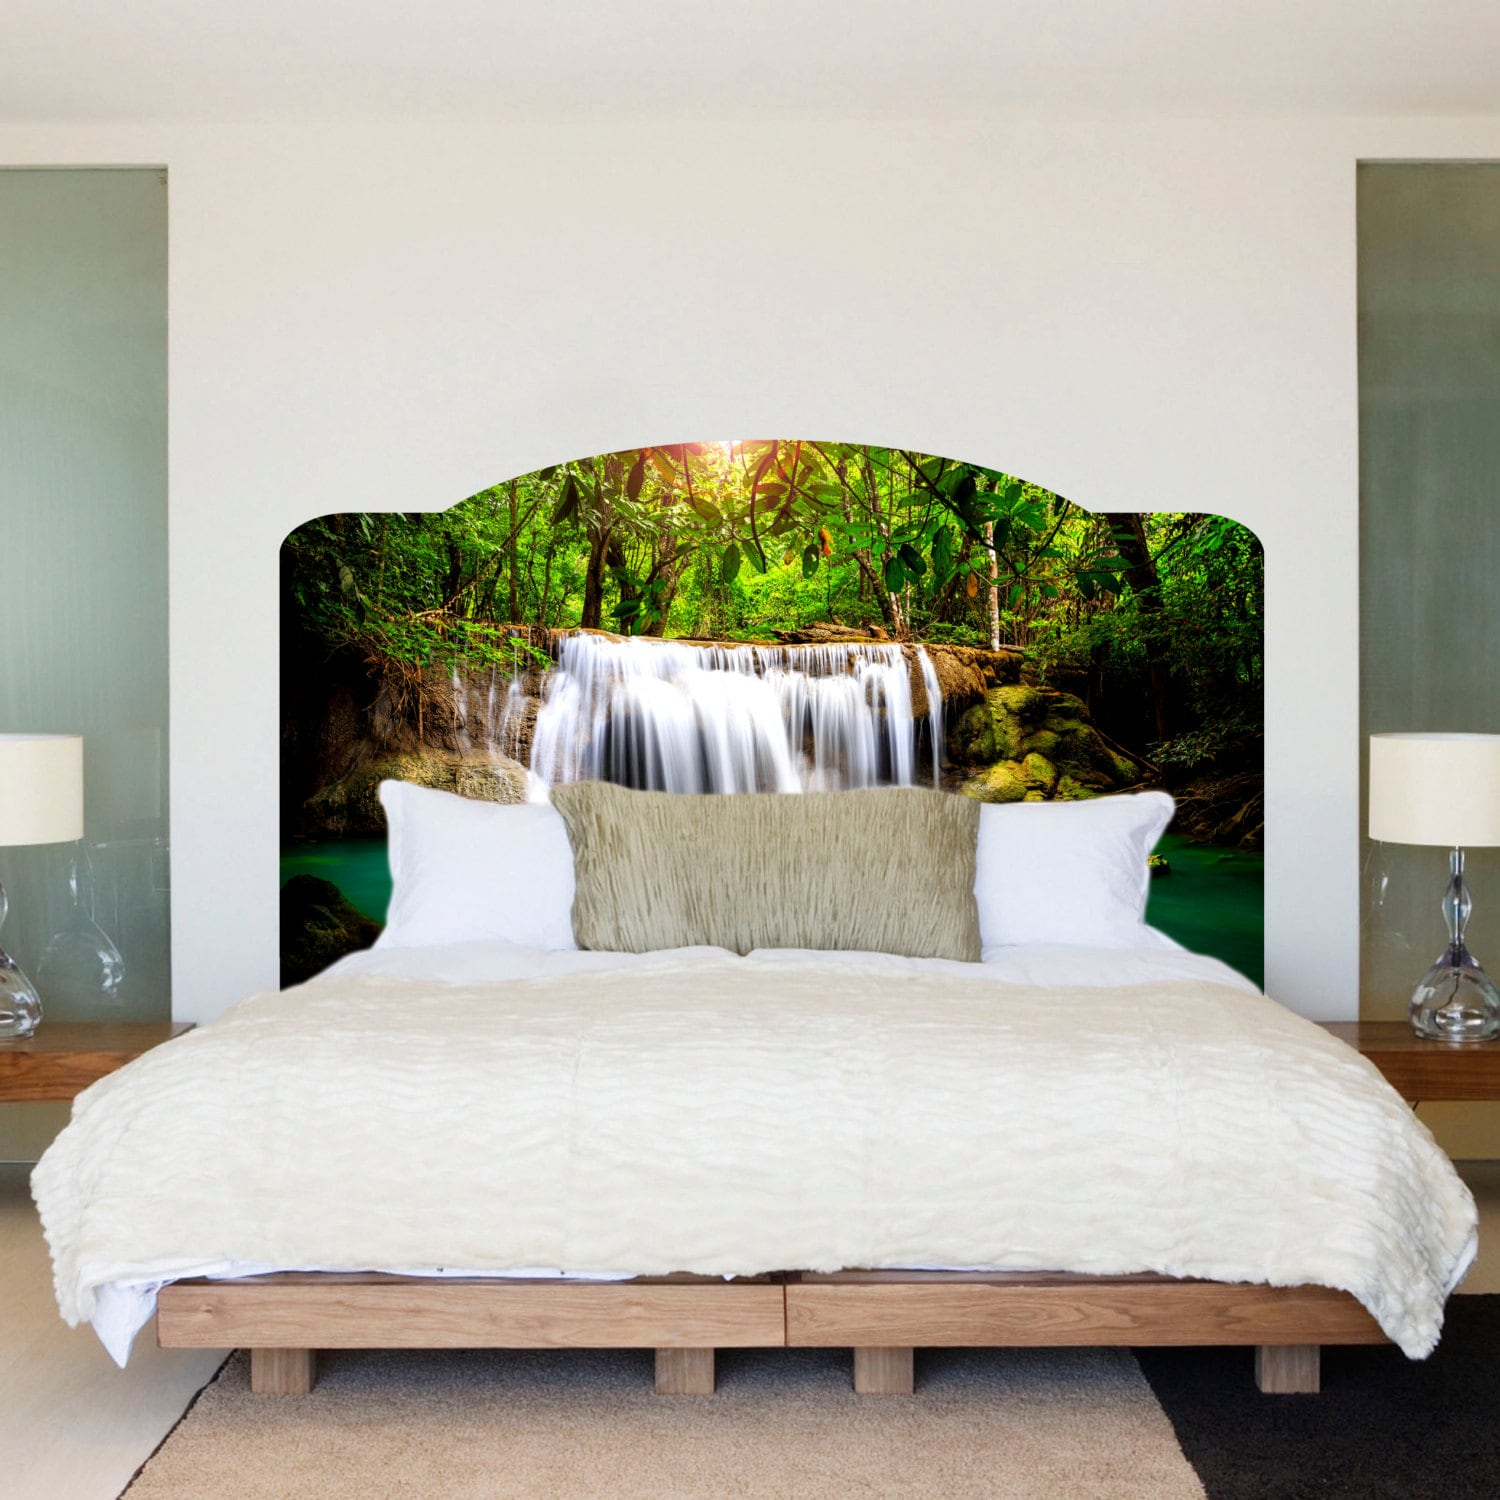 Bed Headboard Waterfall Bed Headboard Wall Mural Waterfall Headboard Art Sticker Headboard Wall Art Mural Headboard For Bedrooms Headboard Wall Decal A10